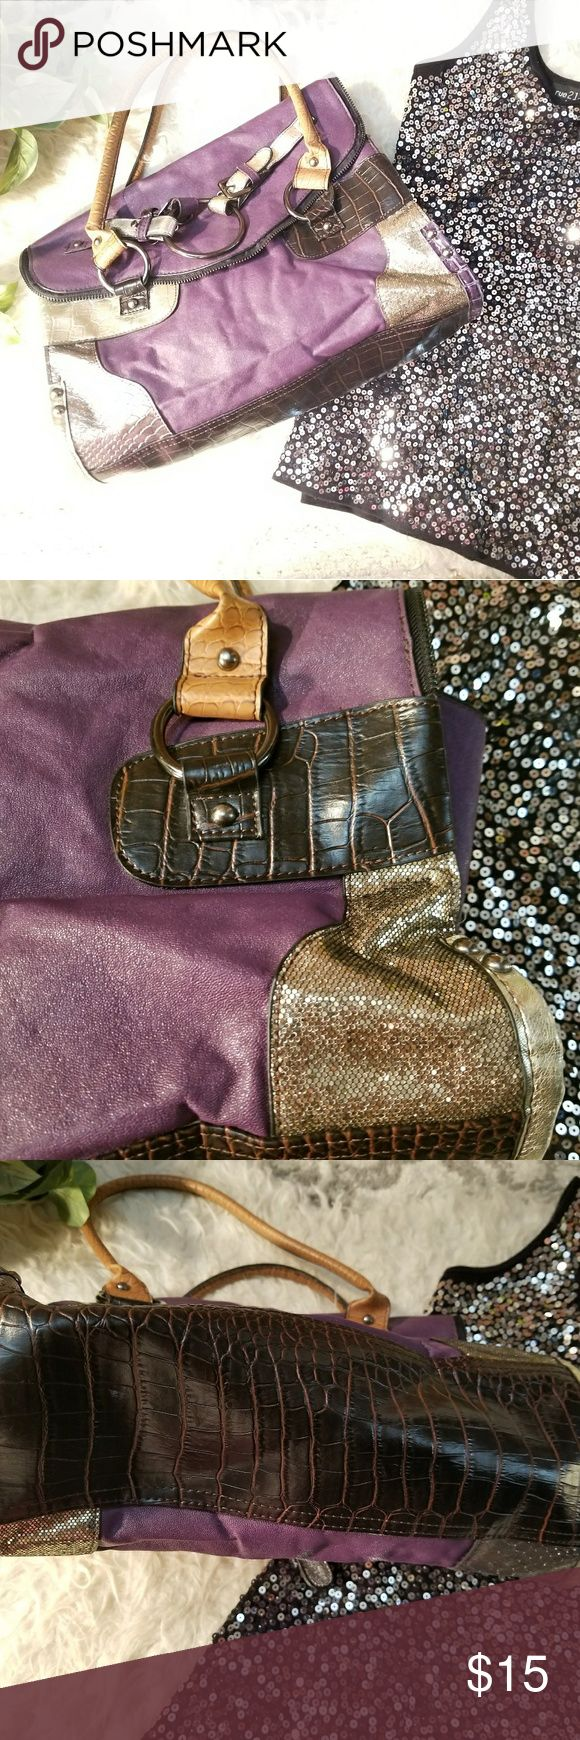 MMS Purple Gold Silver Eye catching Shoulder Bag Excellent Condition with no stains ~ one small peel (picture #8)on the back bottom of bag and not noticeable when carried~ hmu if you have any questions💋~ width 13 Depth 8 SD 8 all measurements are approximate ~ MMS Design Studio Bags Shoulder Bags